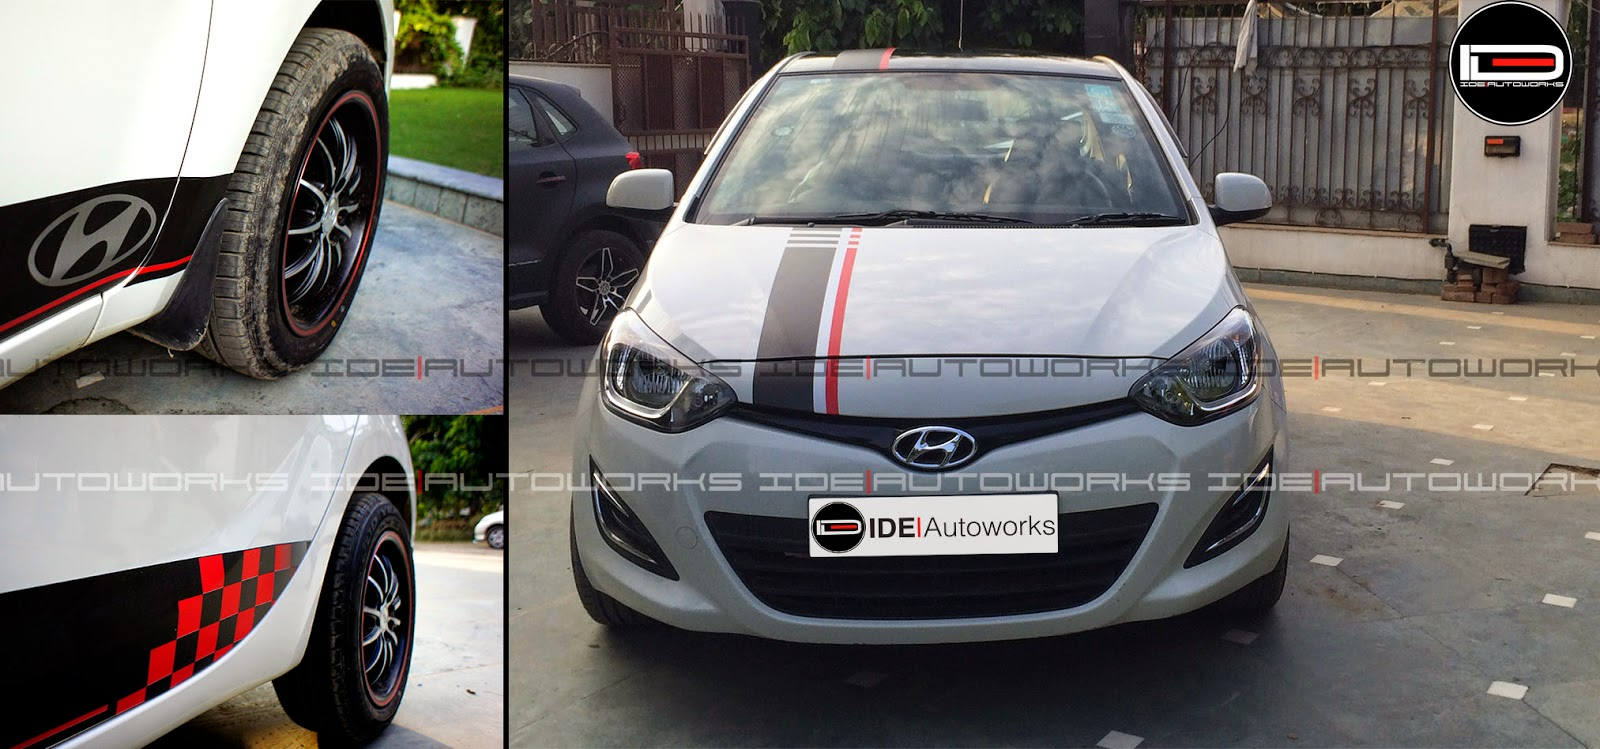 Hyundai I20 Racing Edition By Ide Autoworks Ide Autoworks